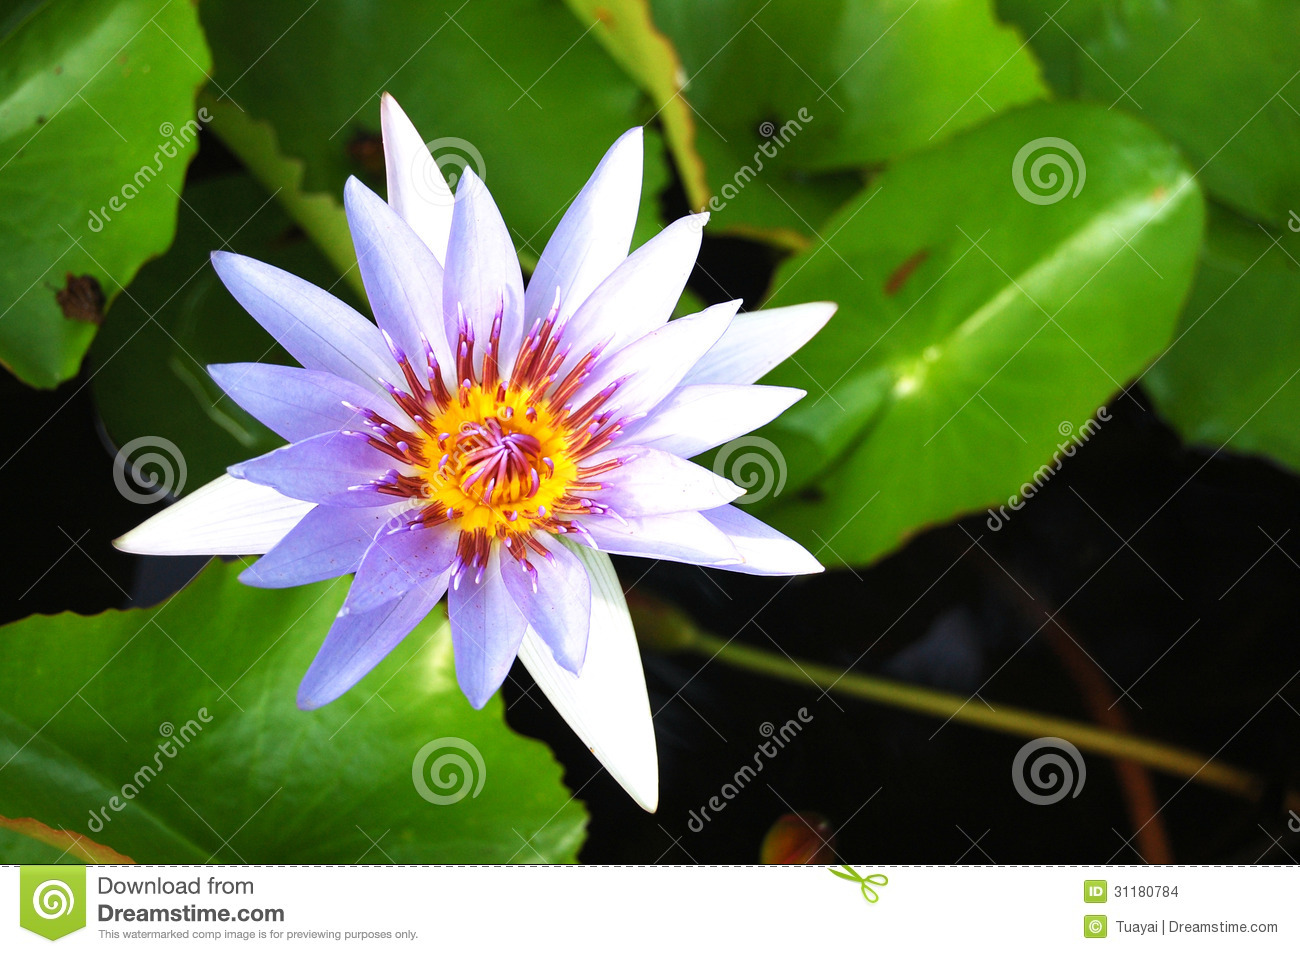 Violet lotus blossom stock photo image of green floral 31180784 download violet lotus blossom stock photo image of green floral 31180784 mightylinksfo